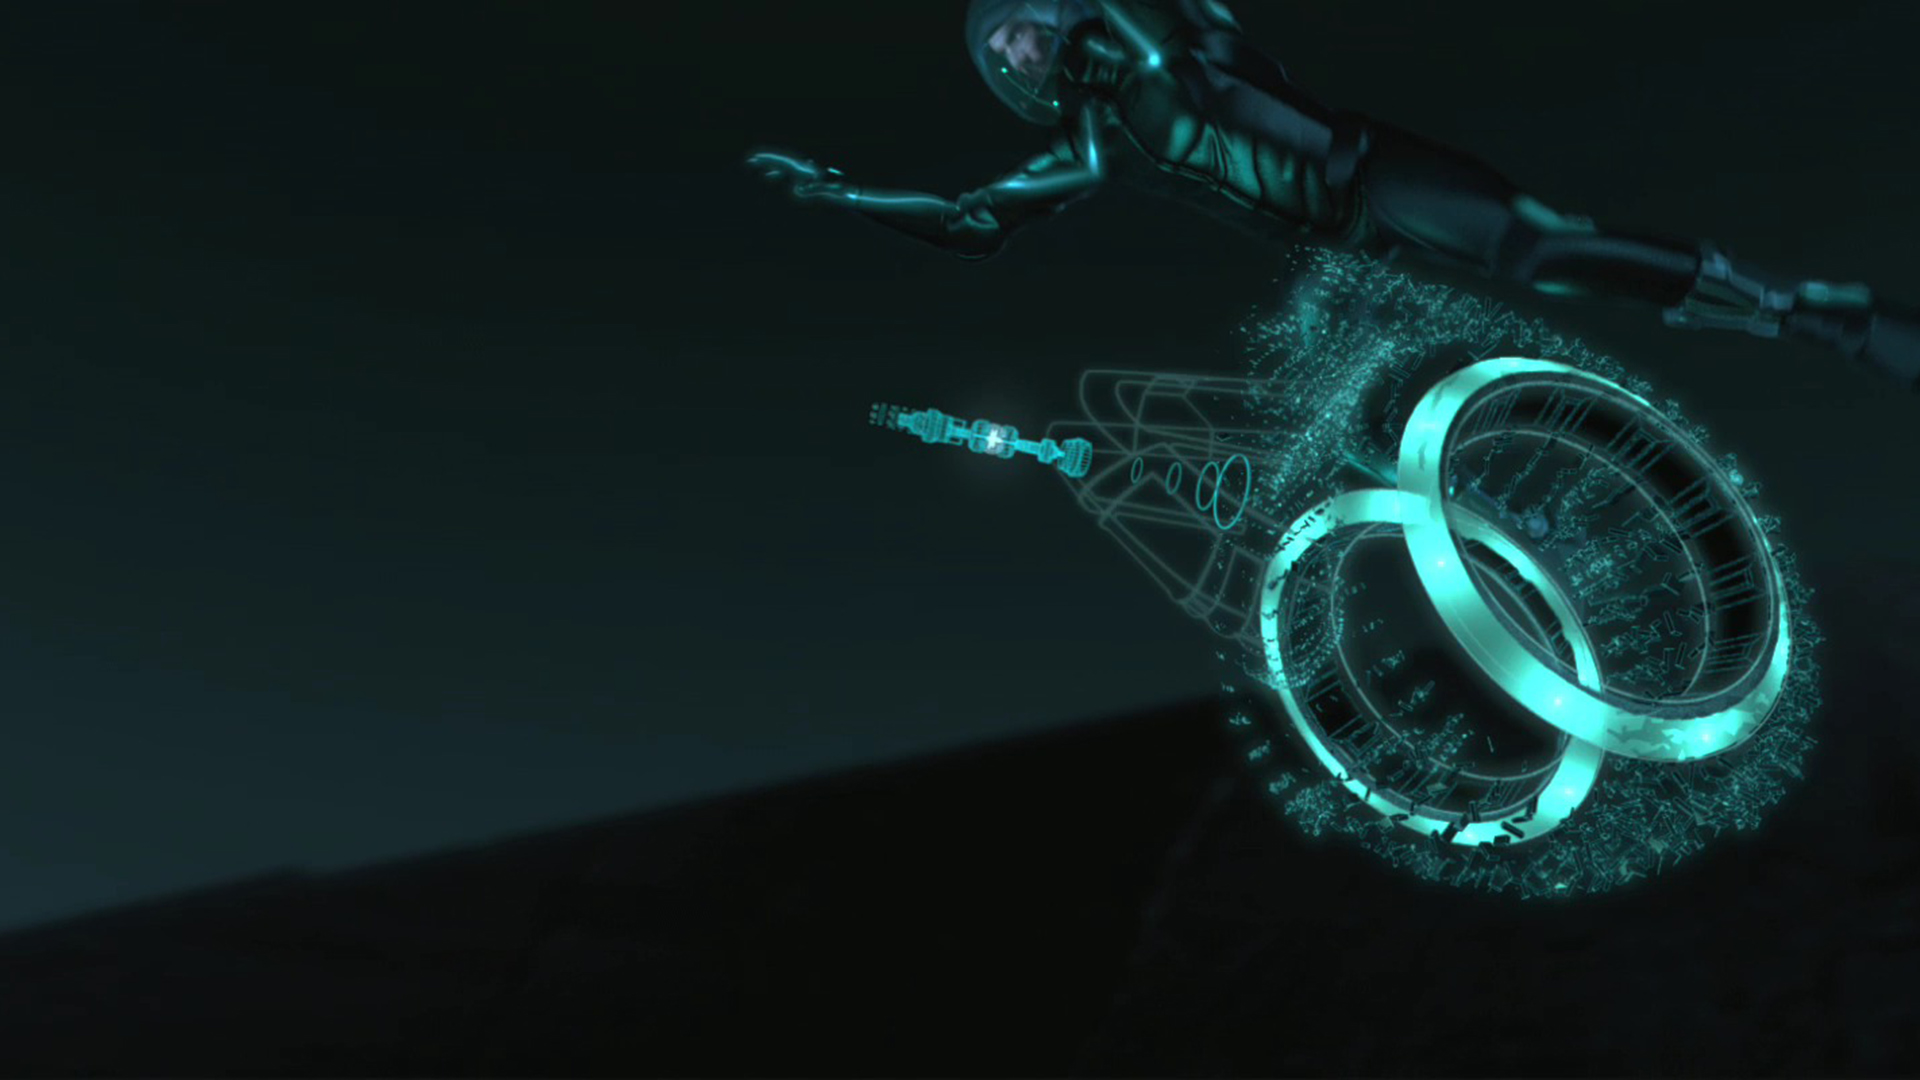 Awesome Wallpapers  Tron Legacy Wallpapers Awesome 1920x1080